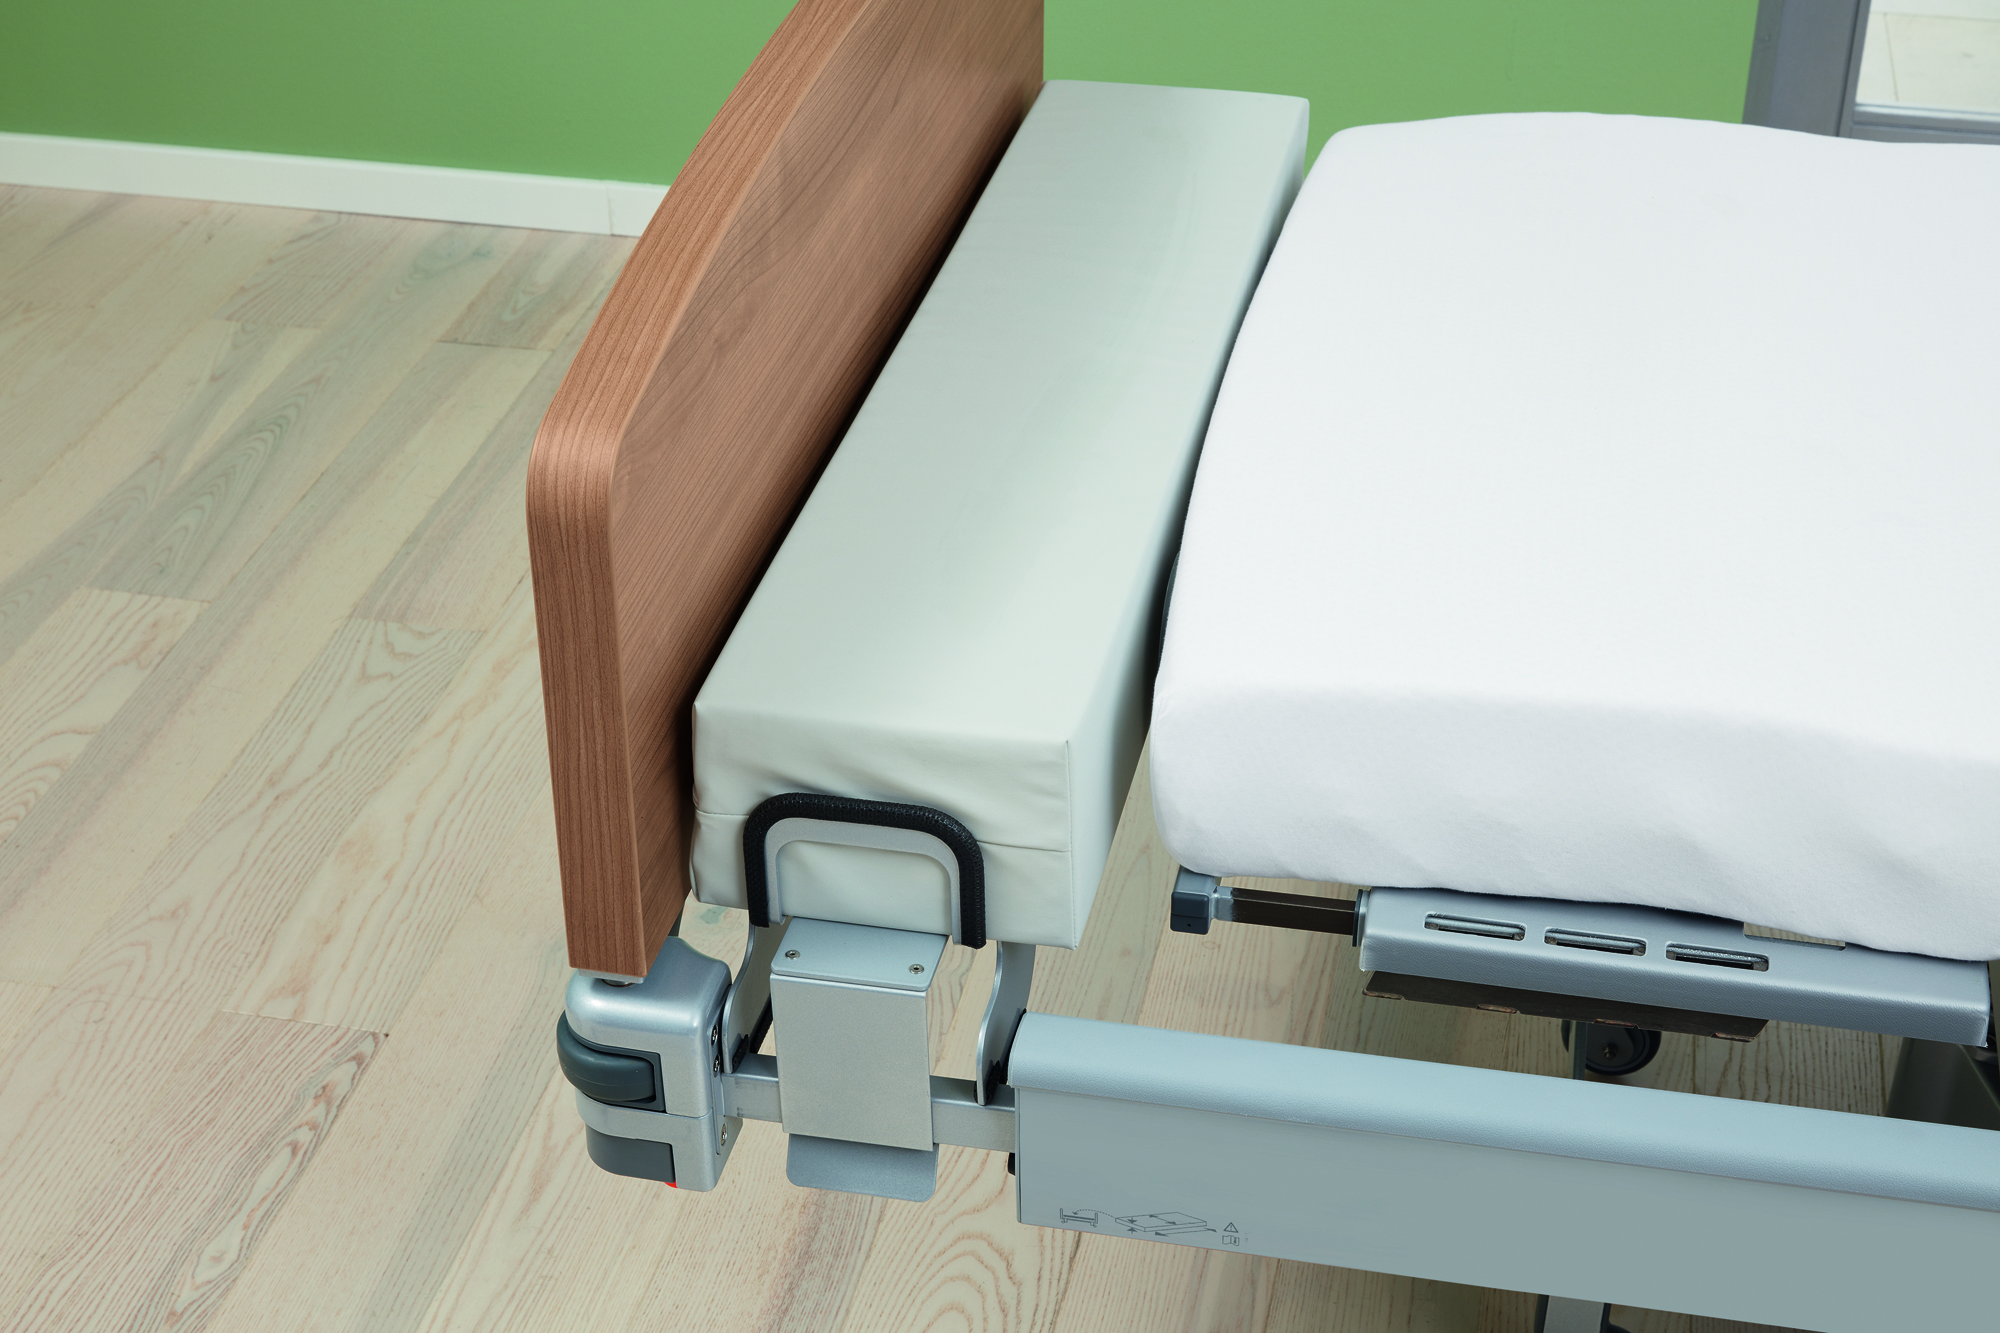 Bed extension for the Vertica care mobilisation bed